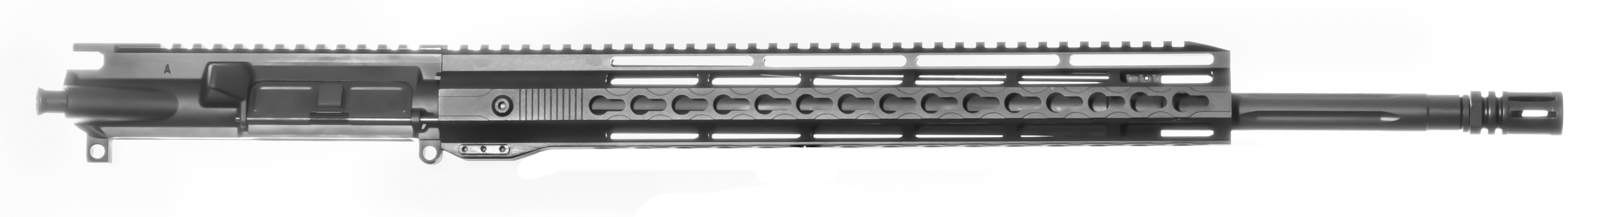 AR15 Upper Assembly - 20 Inch /  223 WYLDE / 1:8 / Straight Flute / 160563